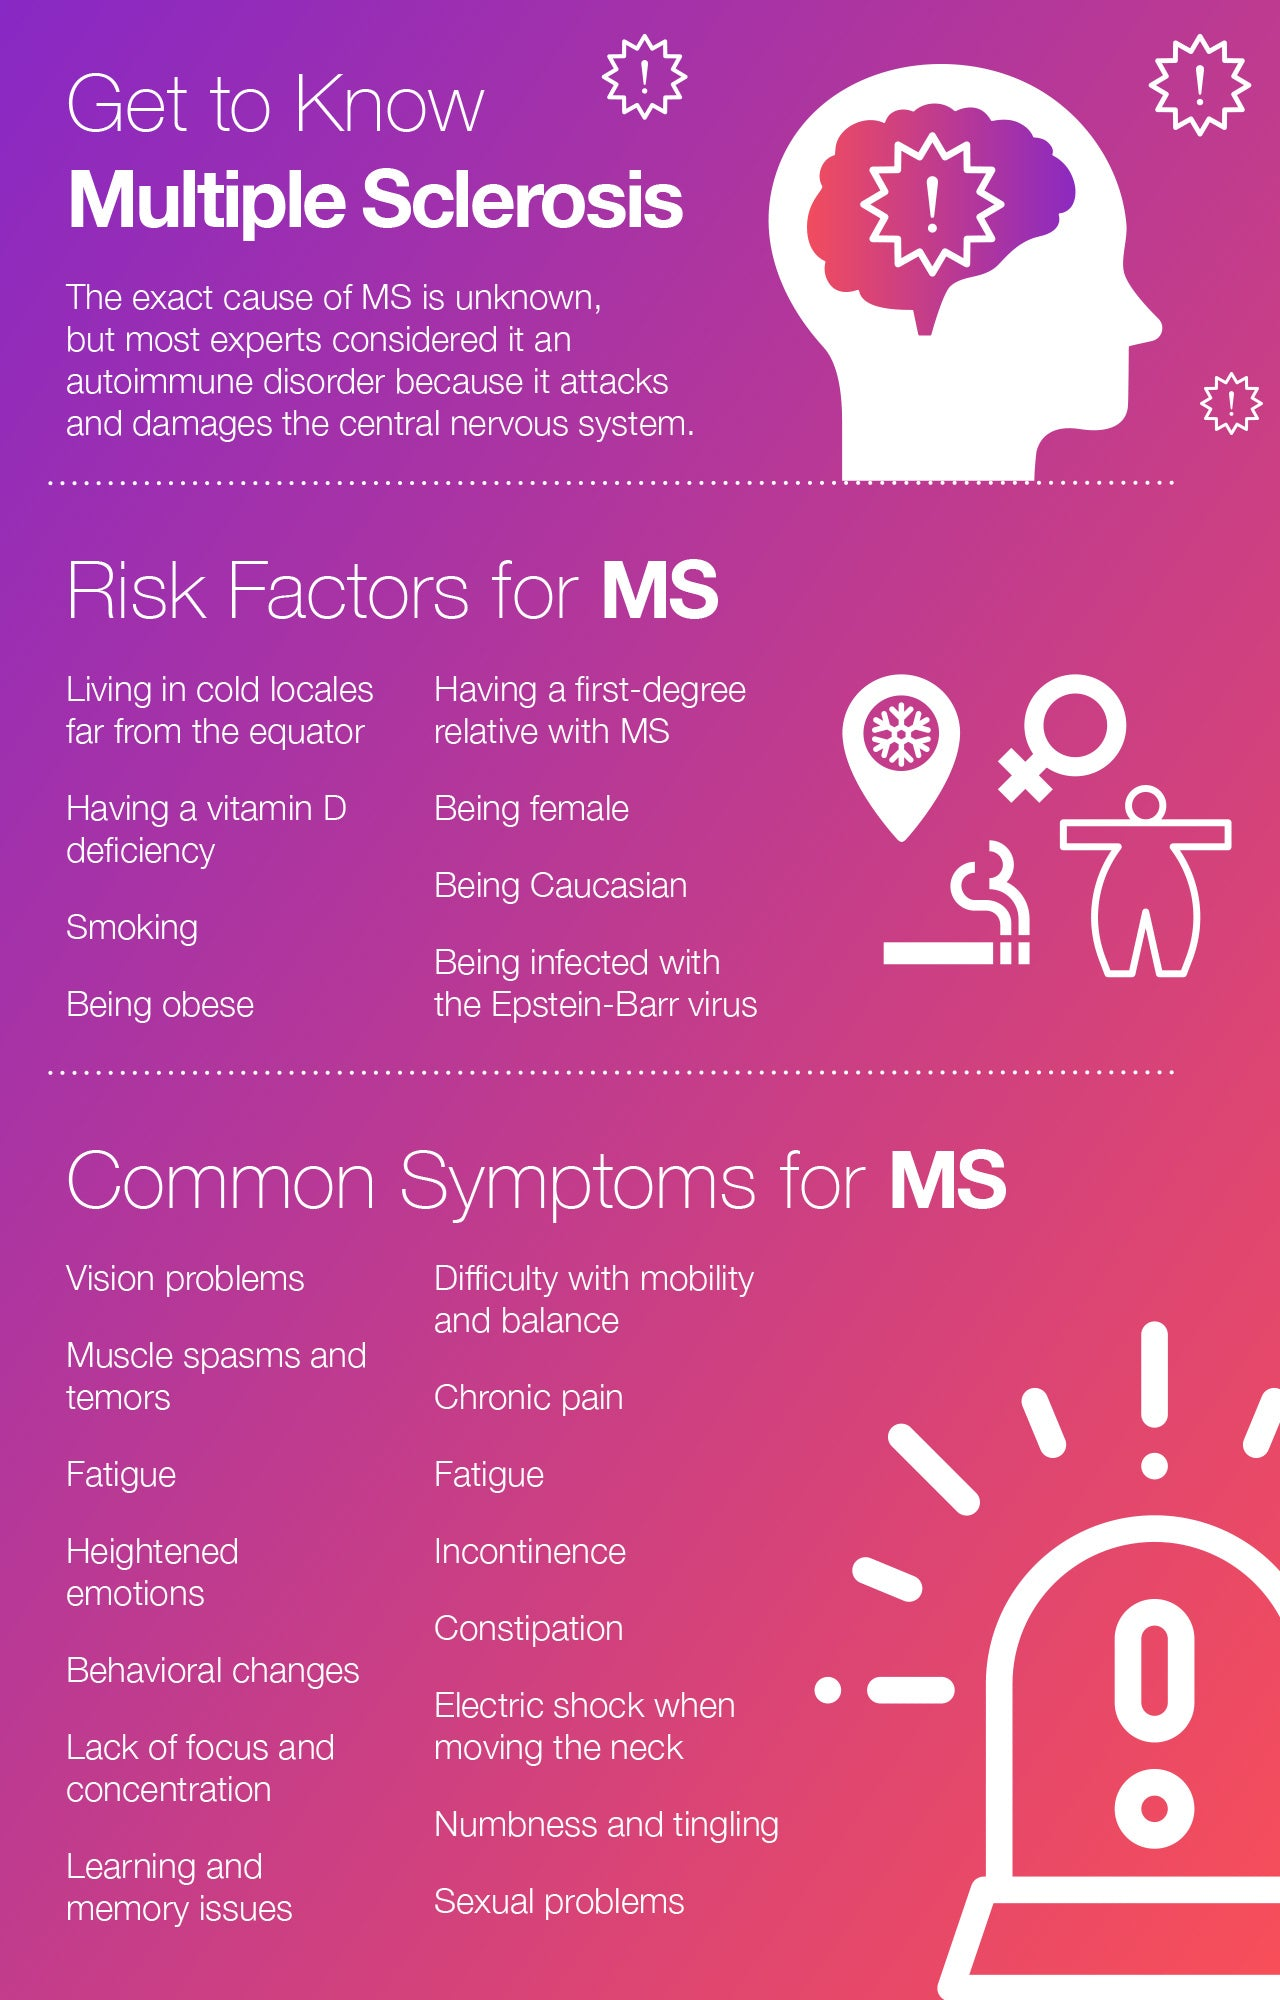 Risk Factors and Common Symptoms for MS